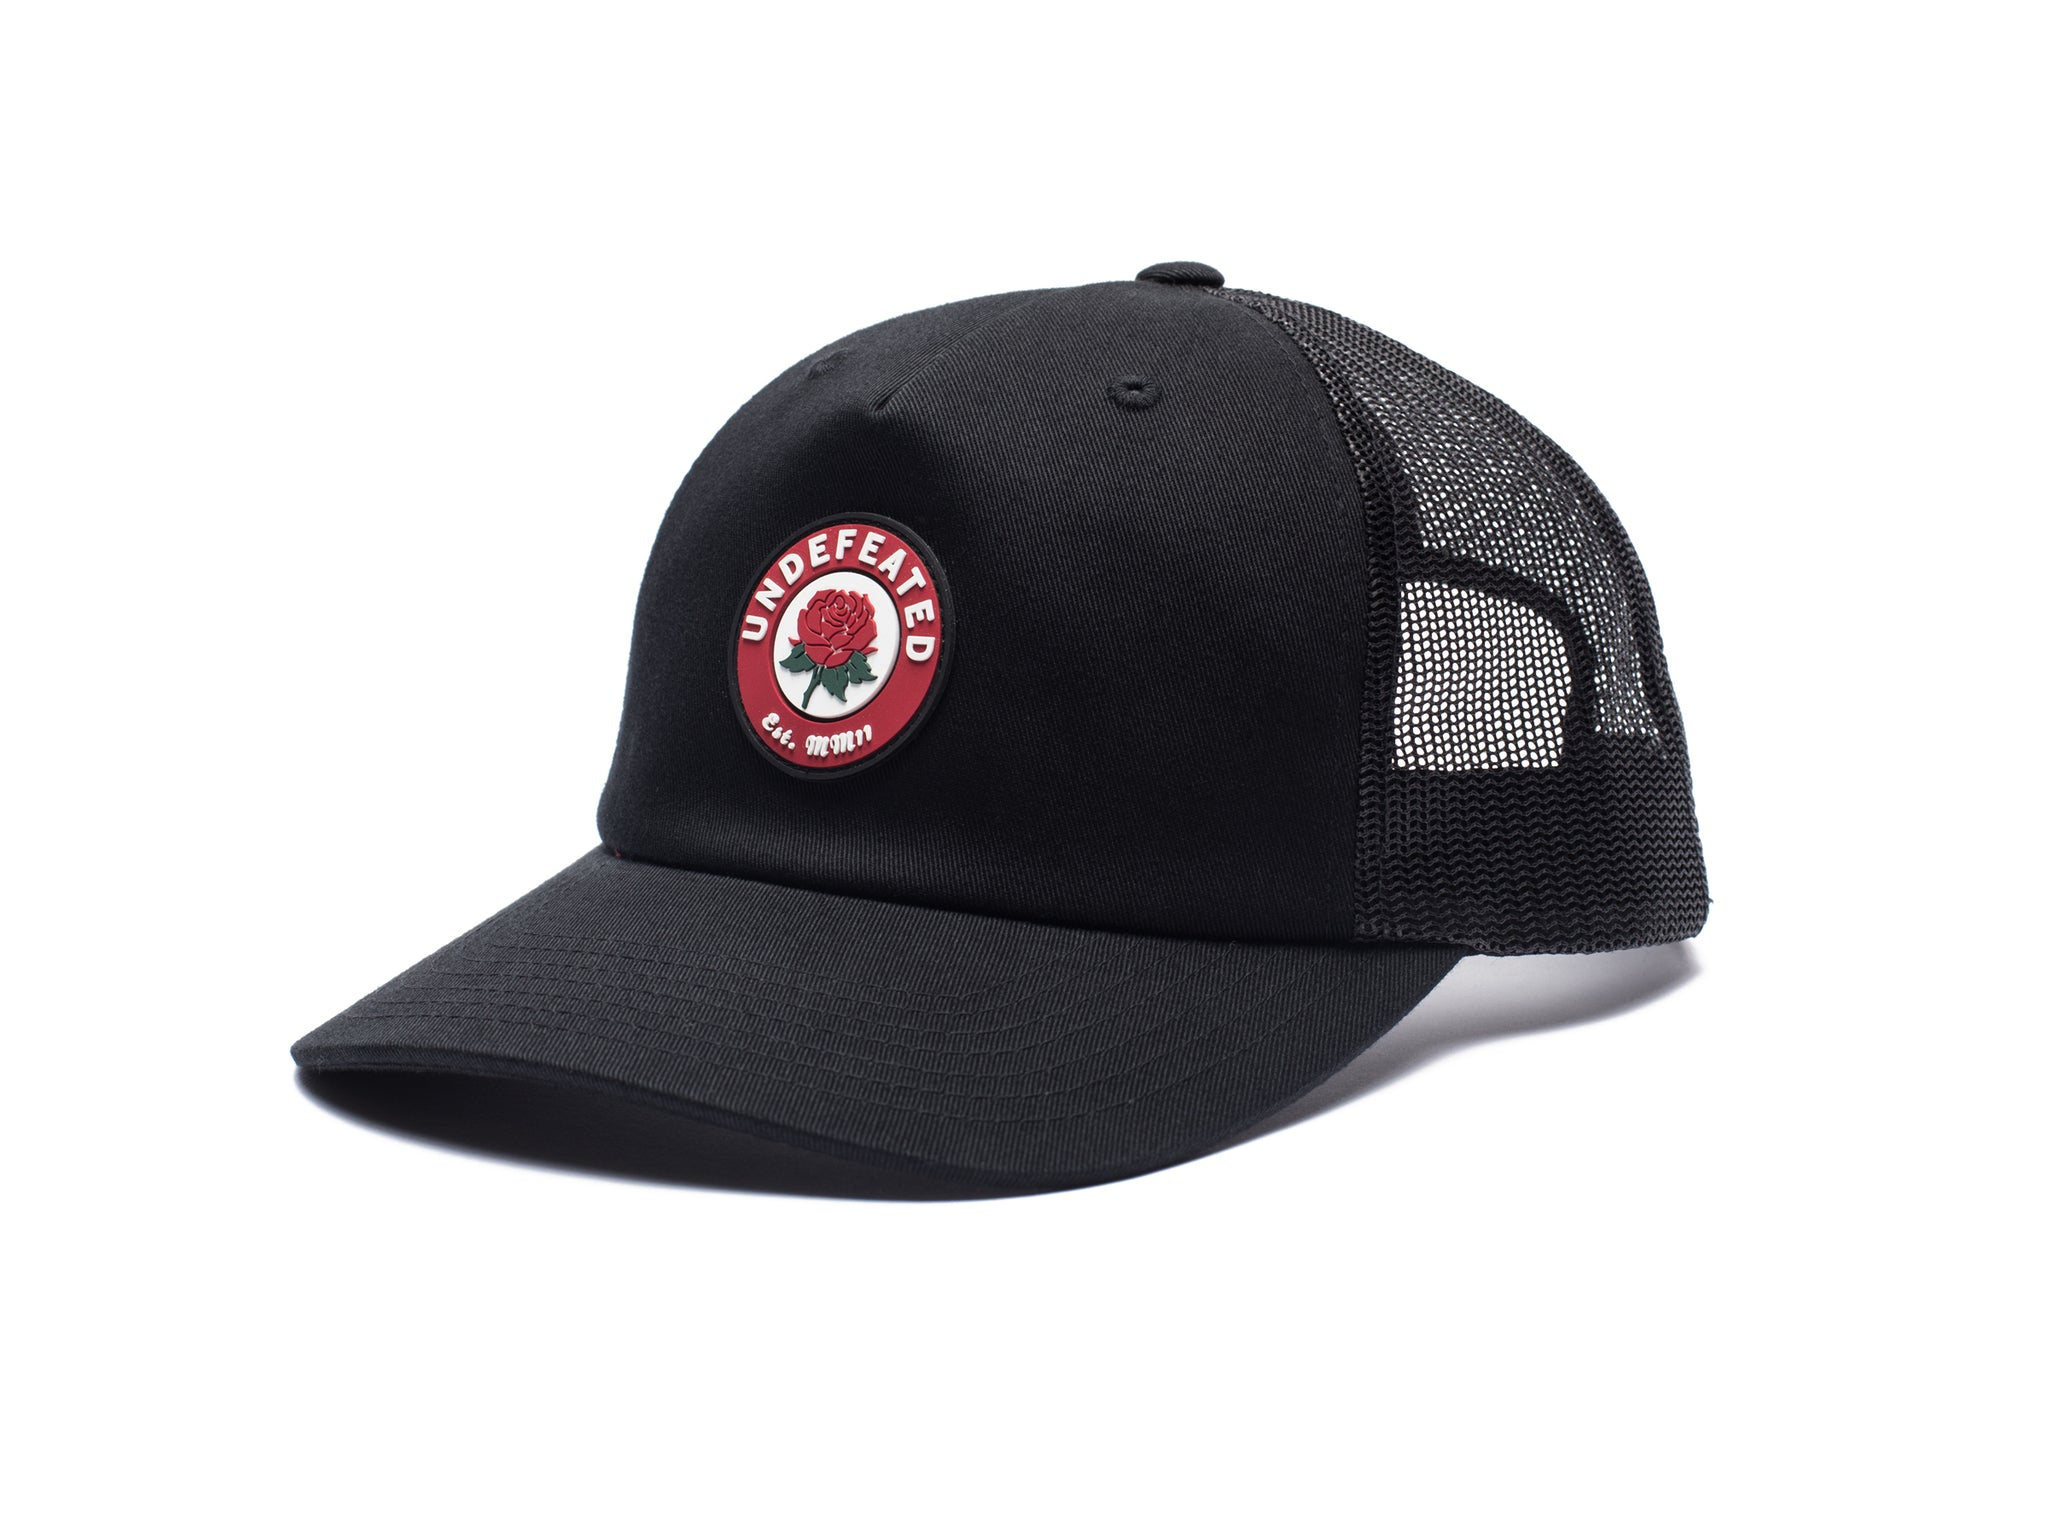 UNDEFEATED ROSE TRUCKER - BLACK